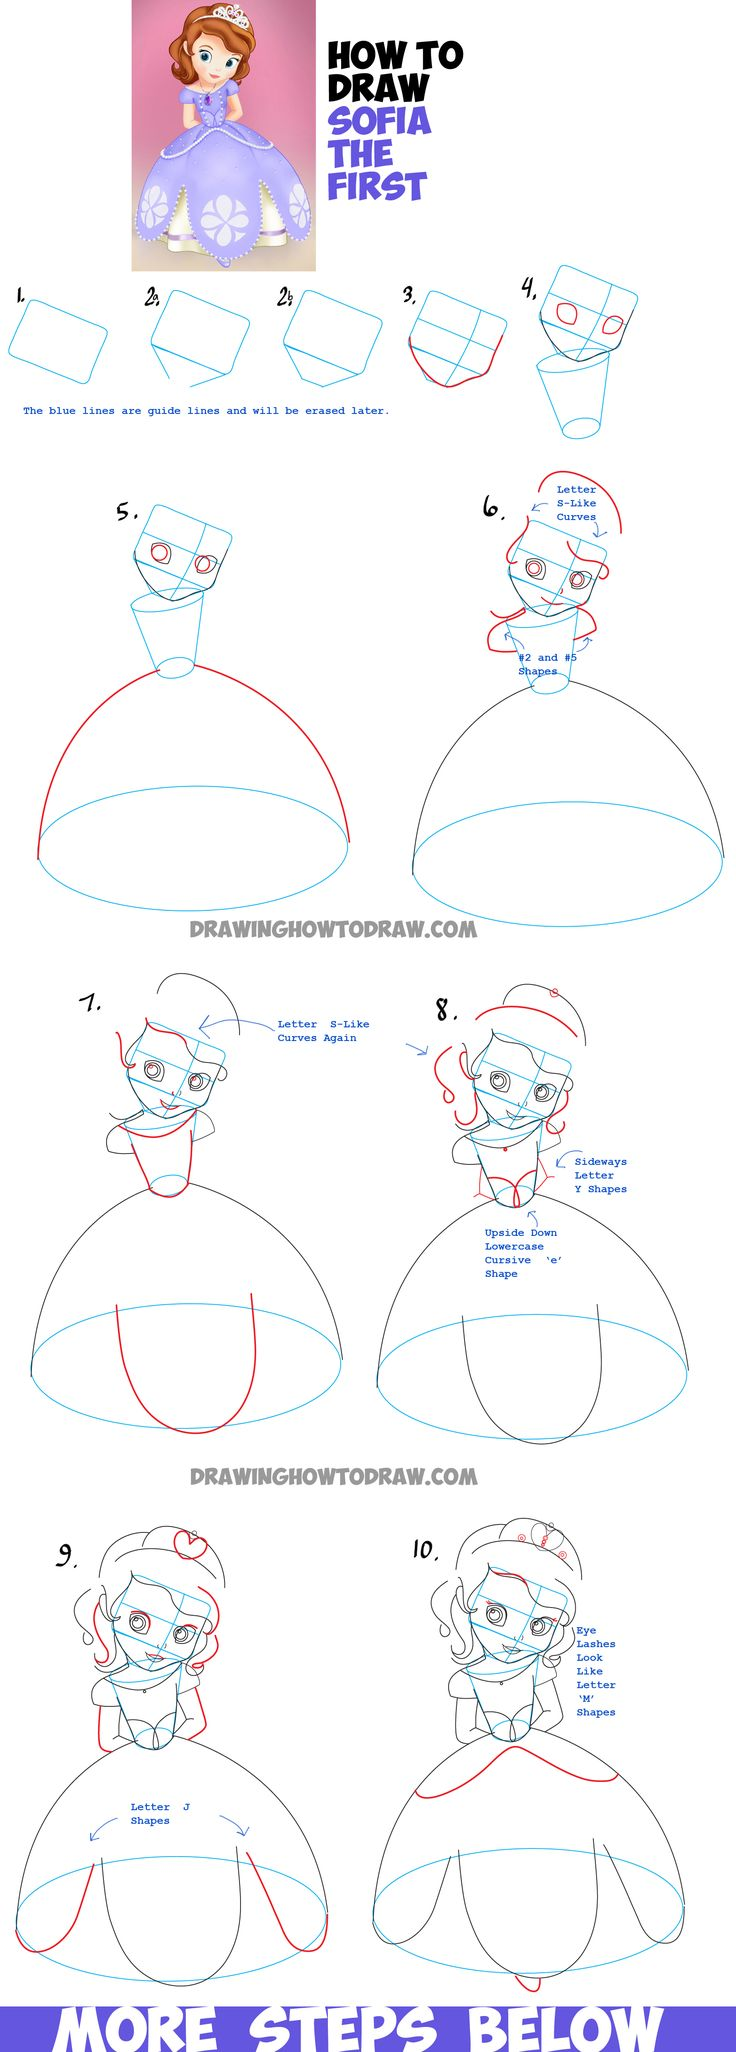 How To Draw Sofia From Sofia The First  Easy Step By Step Drawing Tutorial